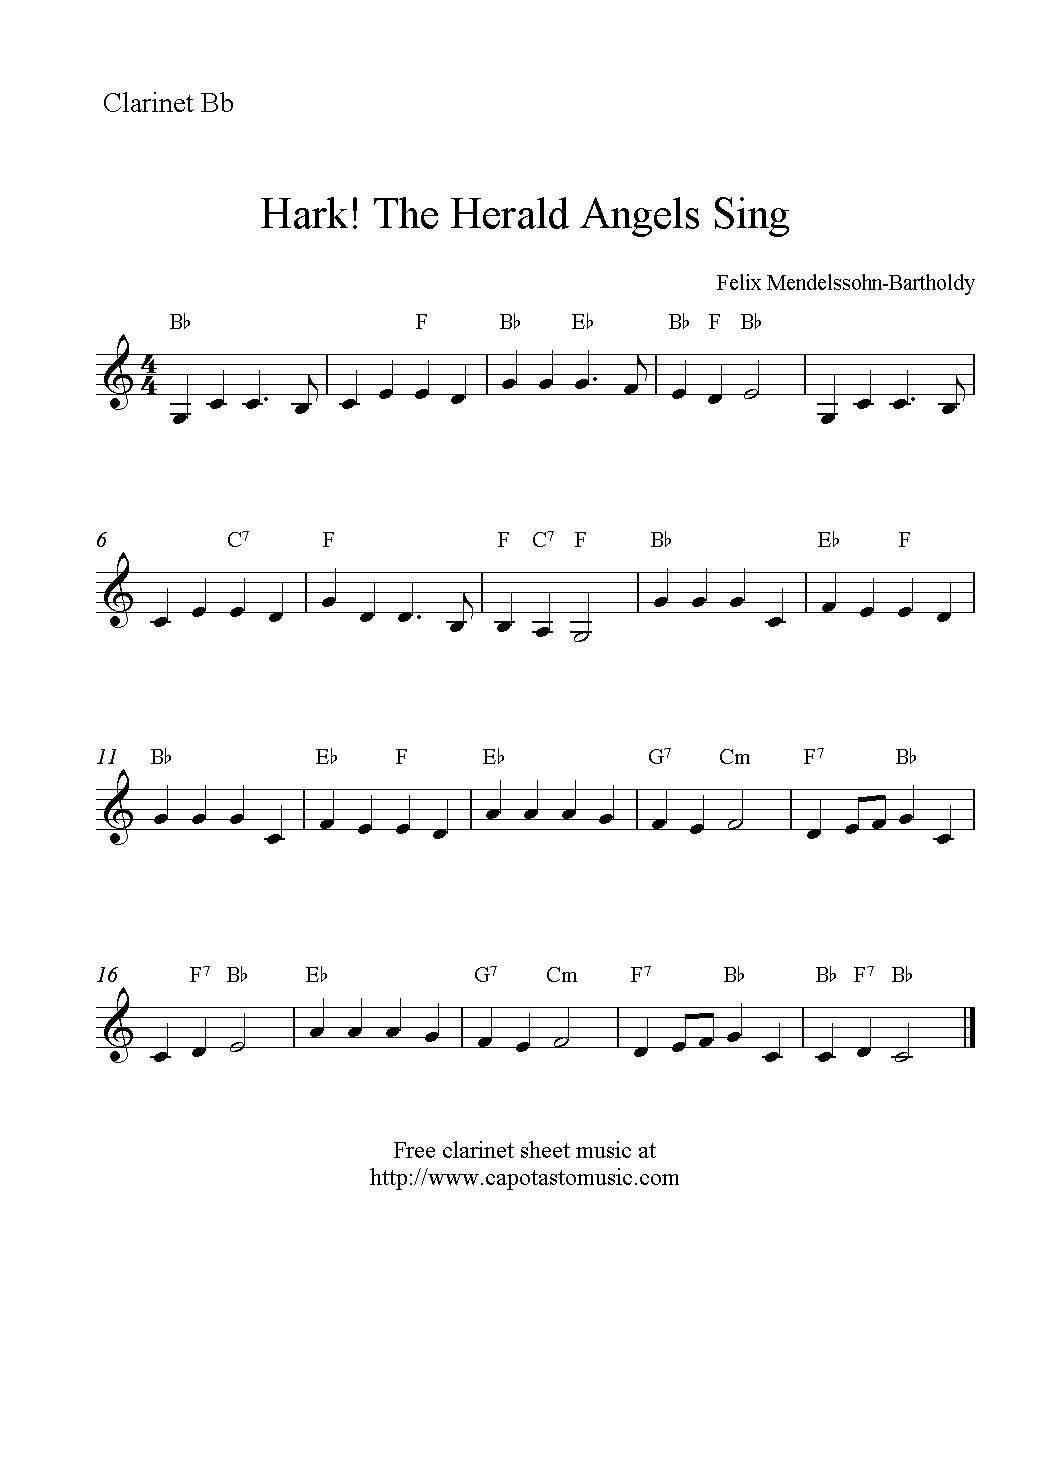 Hark! The Herald Angels Sing, Free Christmas Clarinet Sheet Music Notes - Free Printable Christmas Sheet Music For Clarinet